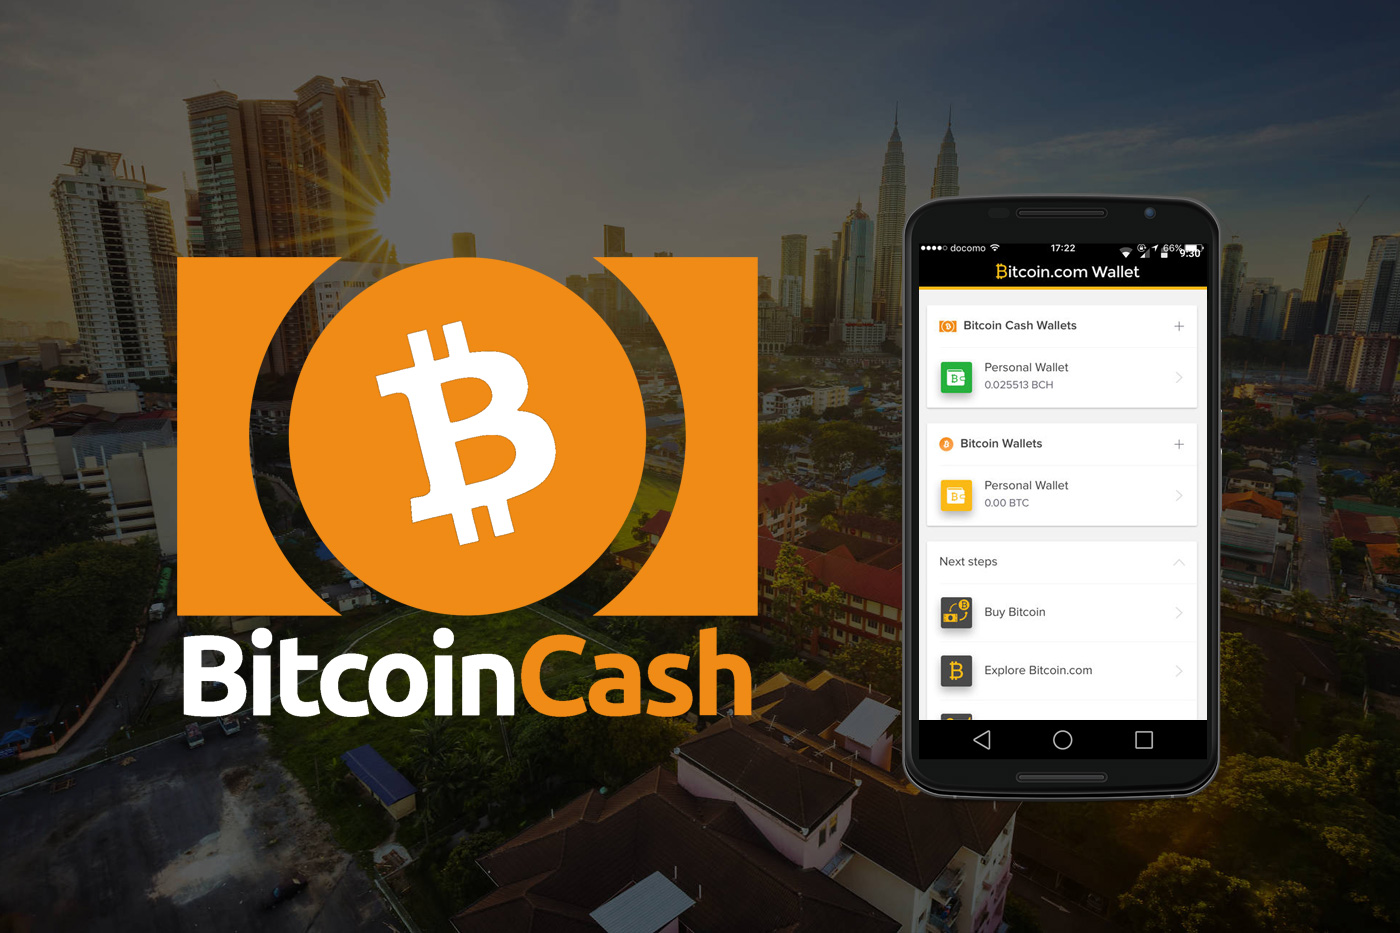 Bitcoin Cash Guide